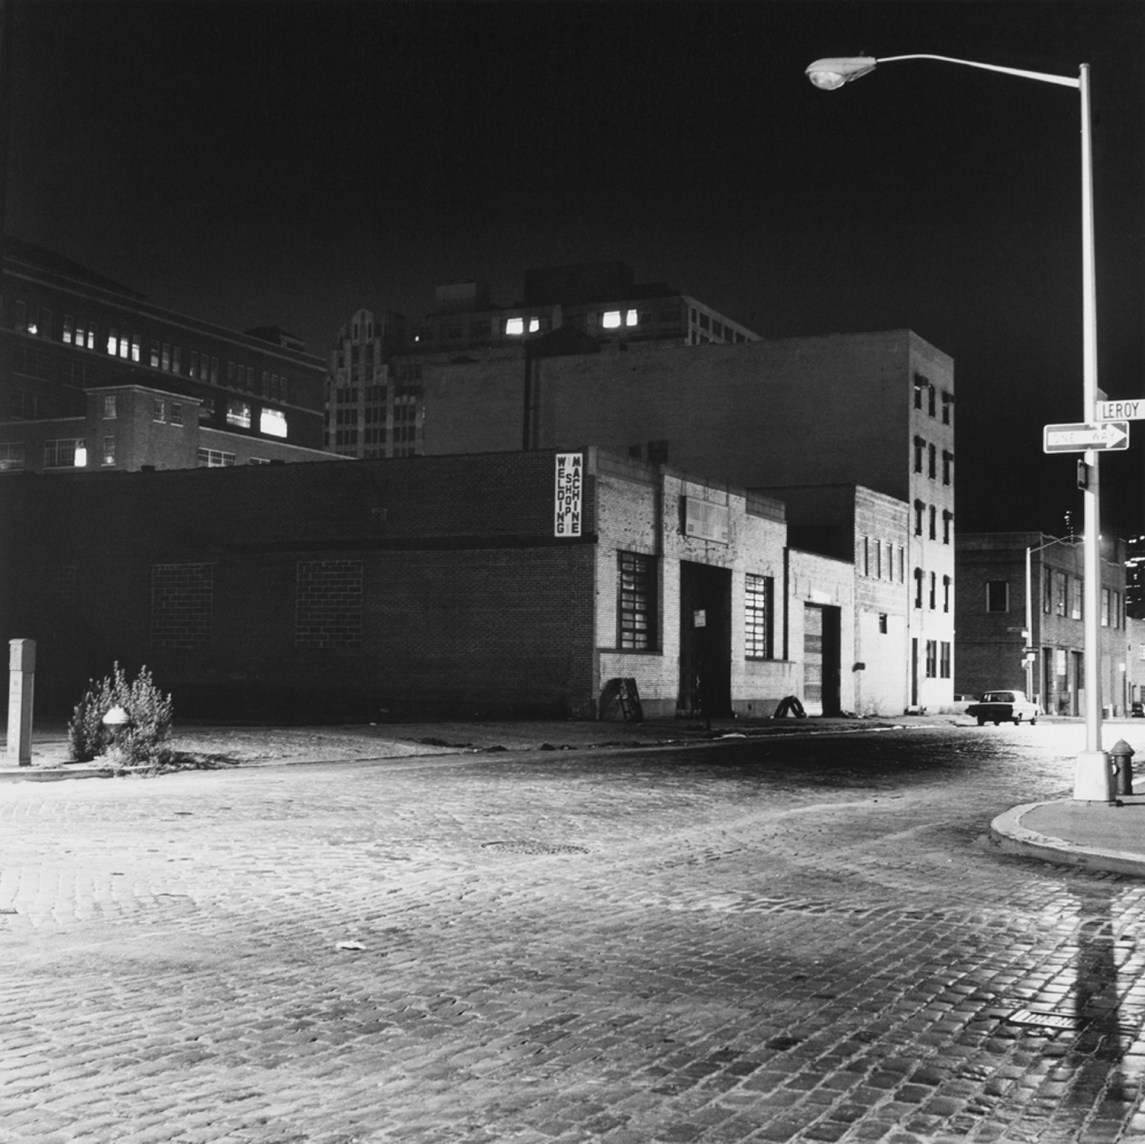 Black and white photograph of an empty street at night